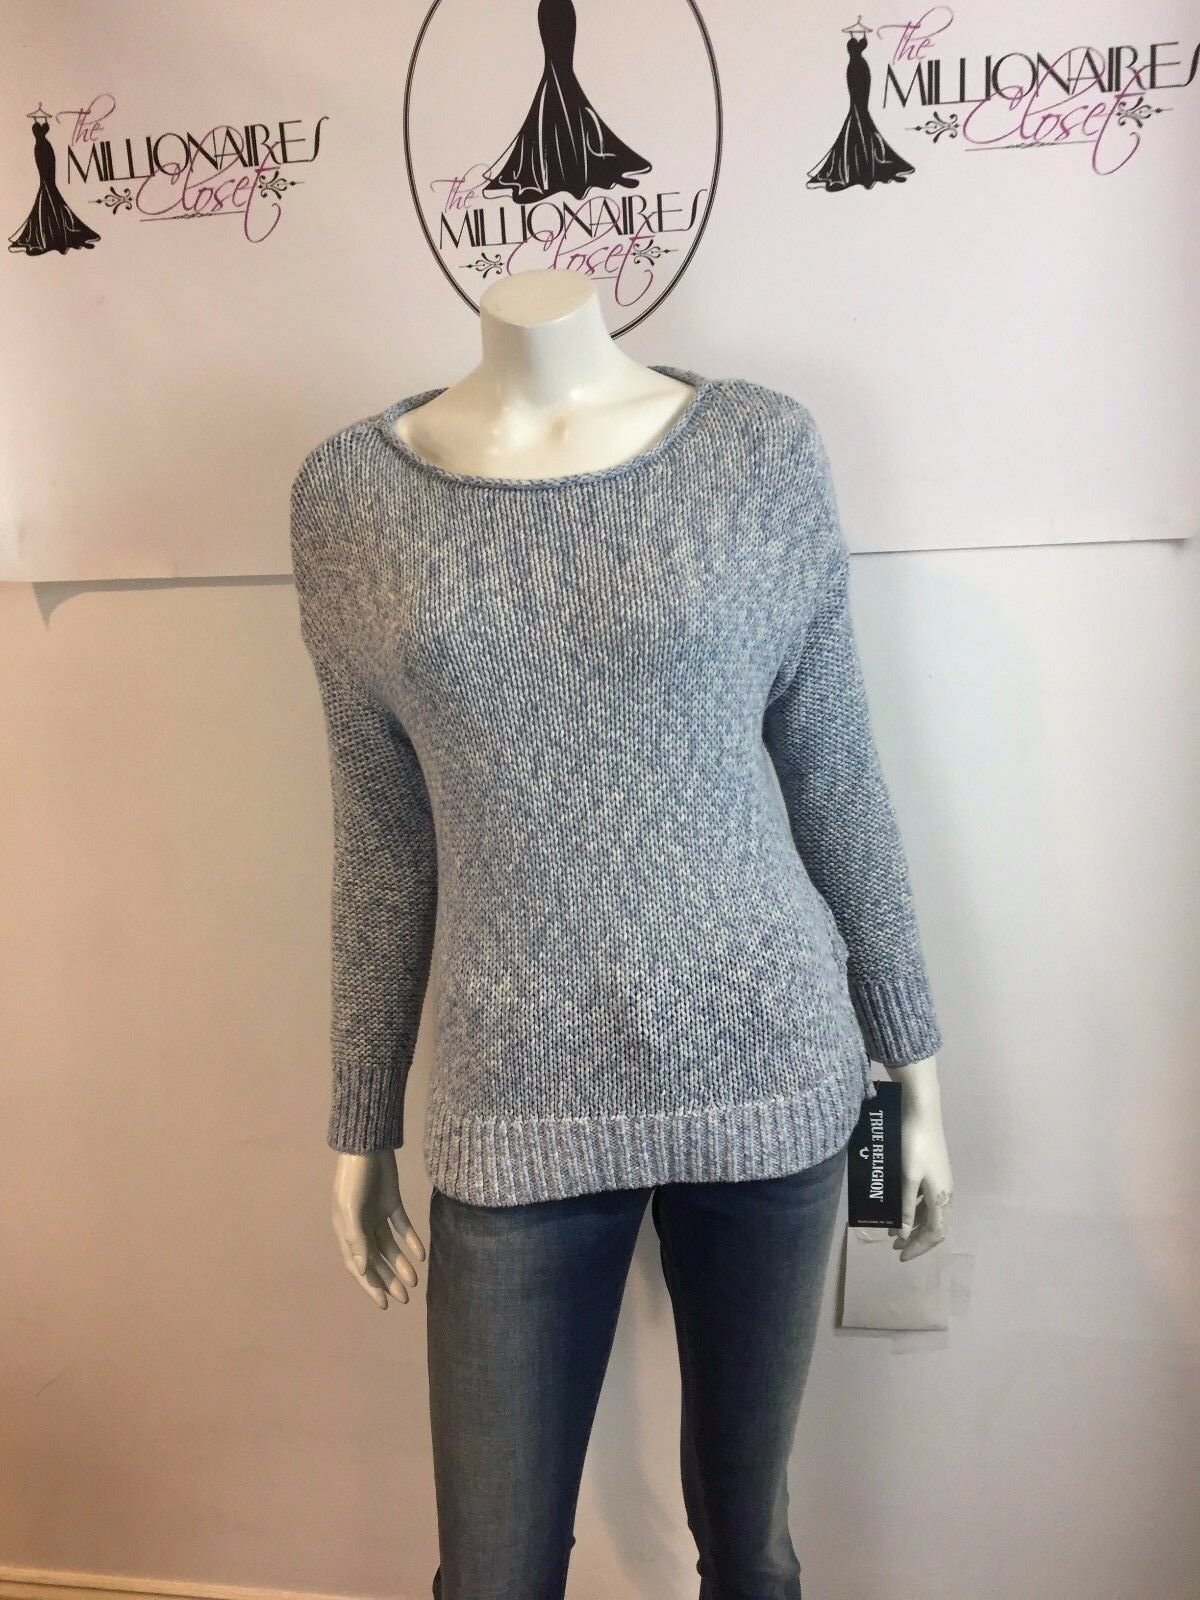 VINCE 118517 118517 118517 blueE WHITE COTTON KNIT SWEATER SZ M cfdb70